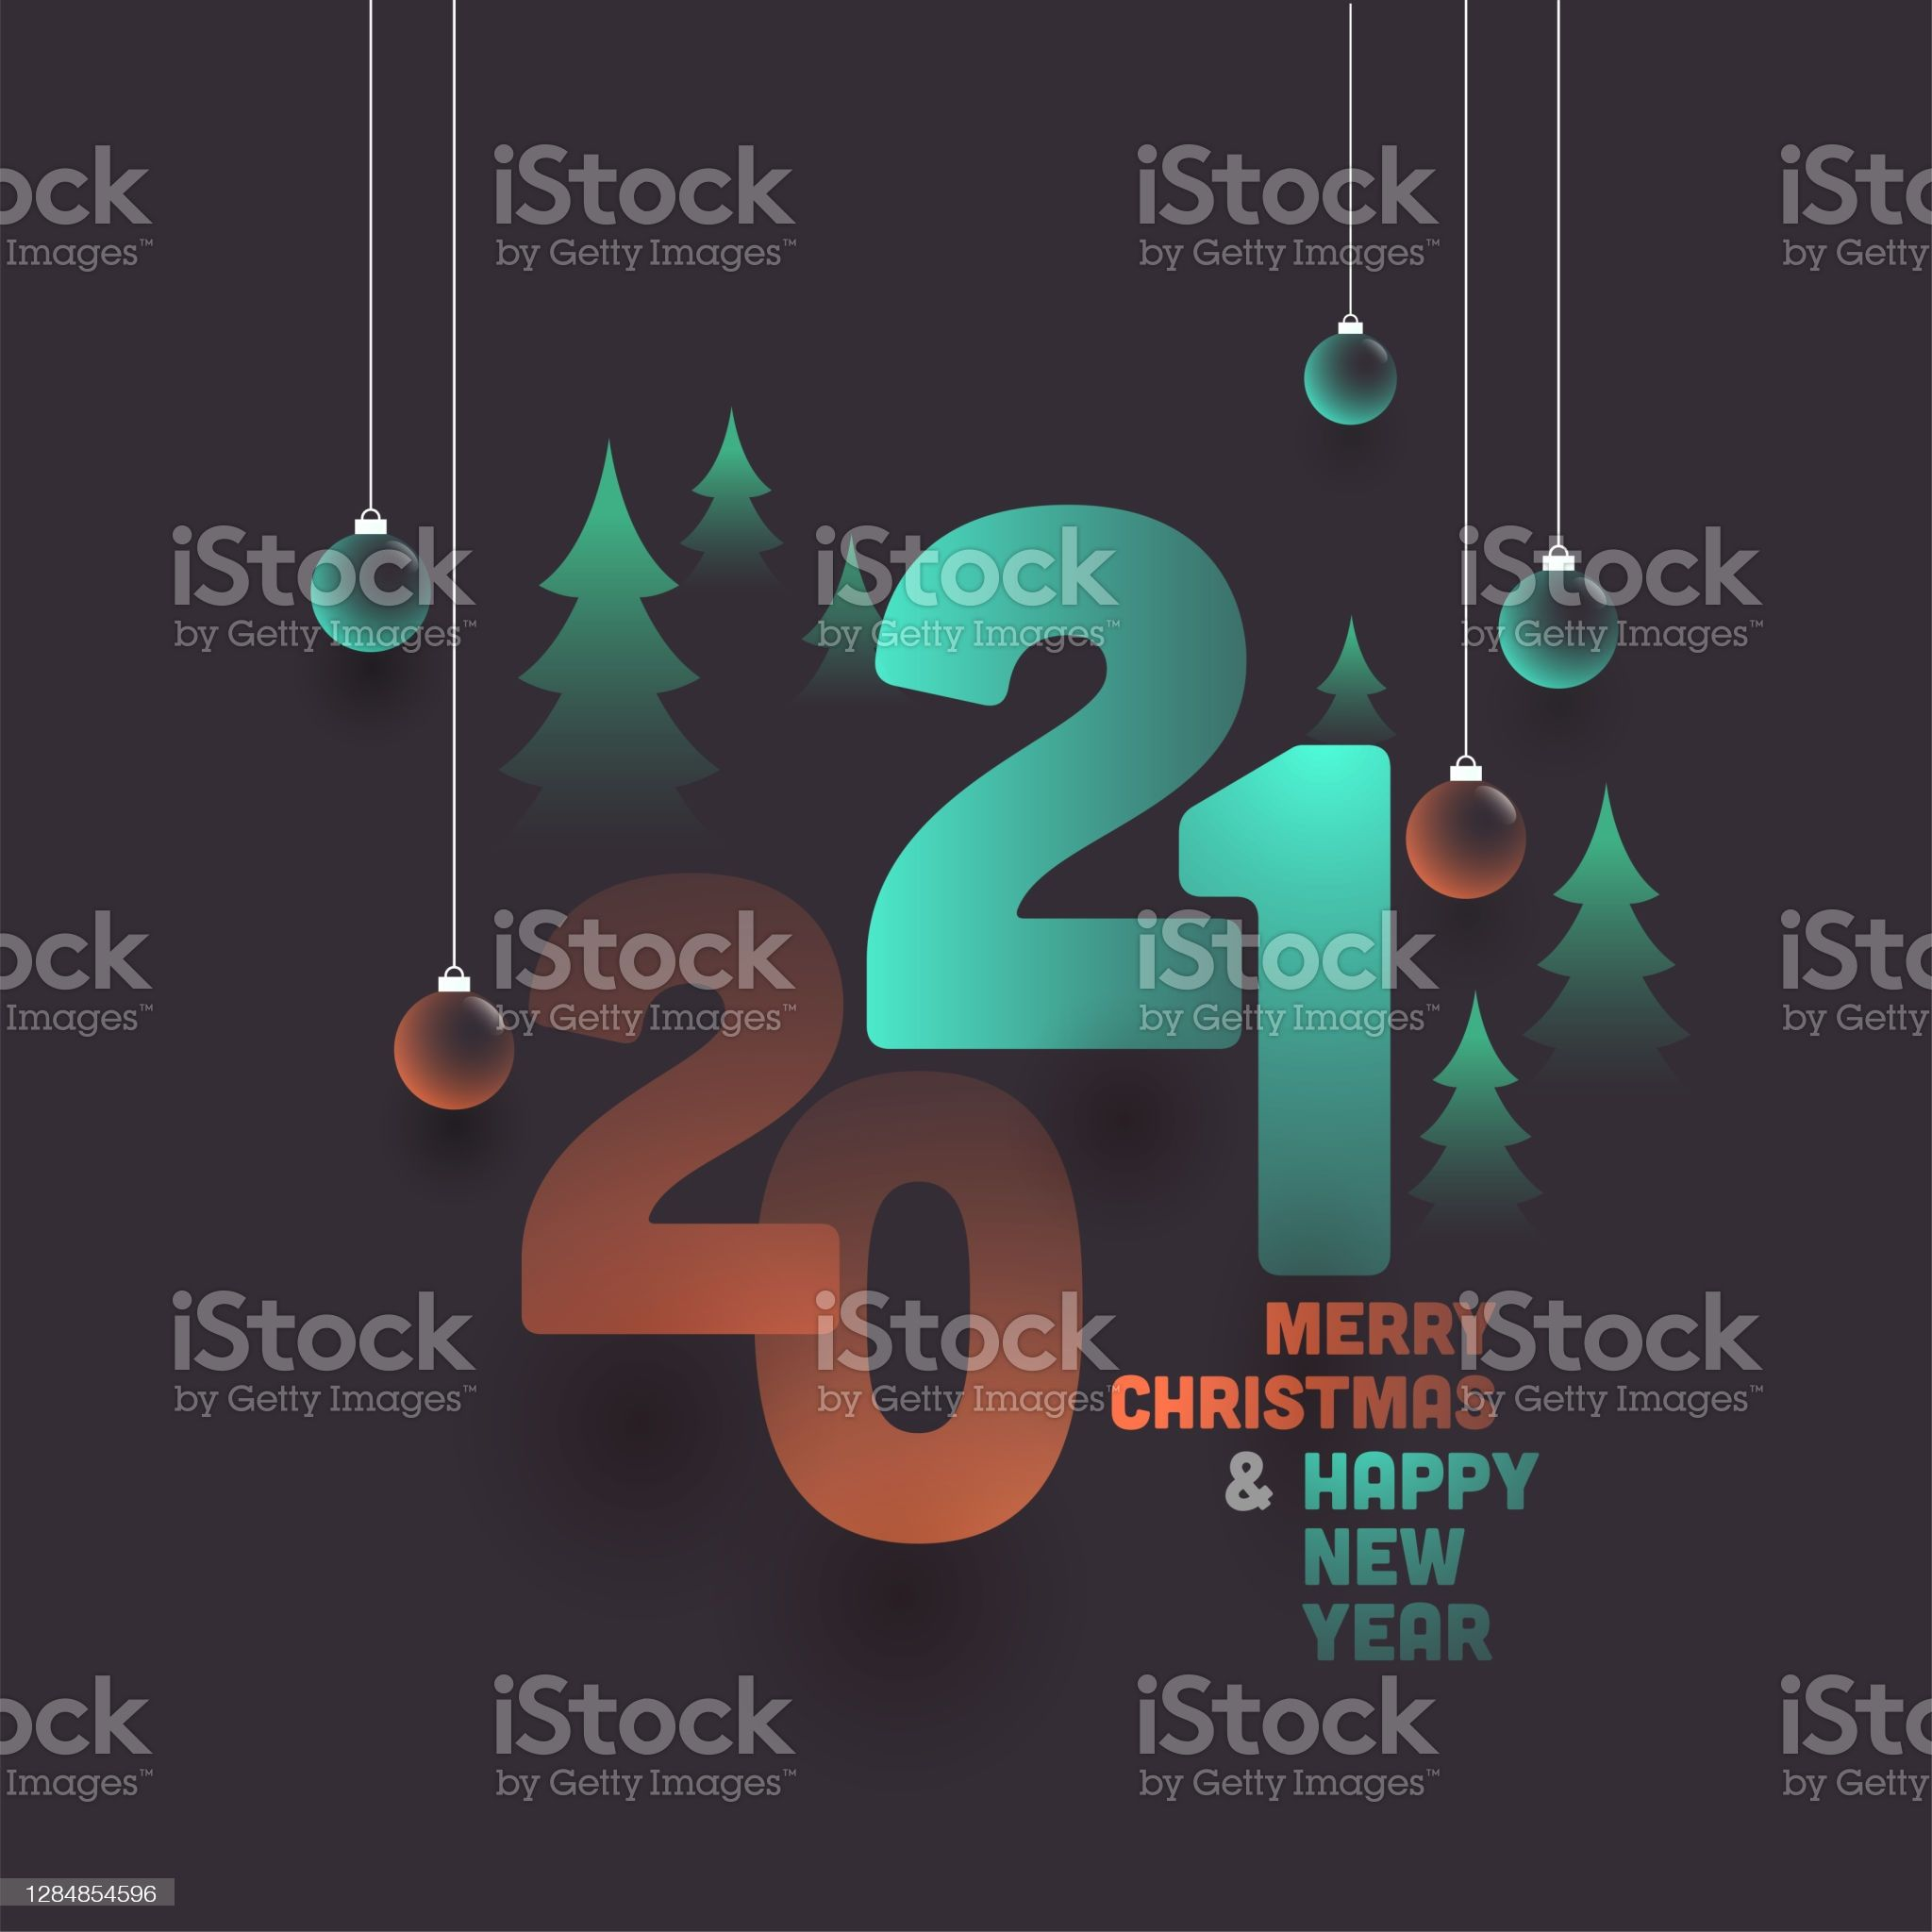 Merry Christmas 2021 Pictures Gray Happy New Year Merry Christmas Text With Hanging Glossy Baubles And Merry Christmas Text Christmas Text Xmas Tree